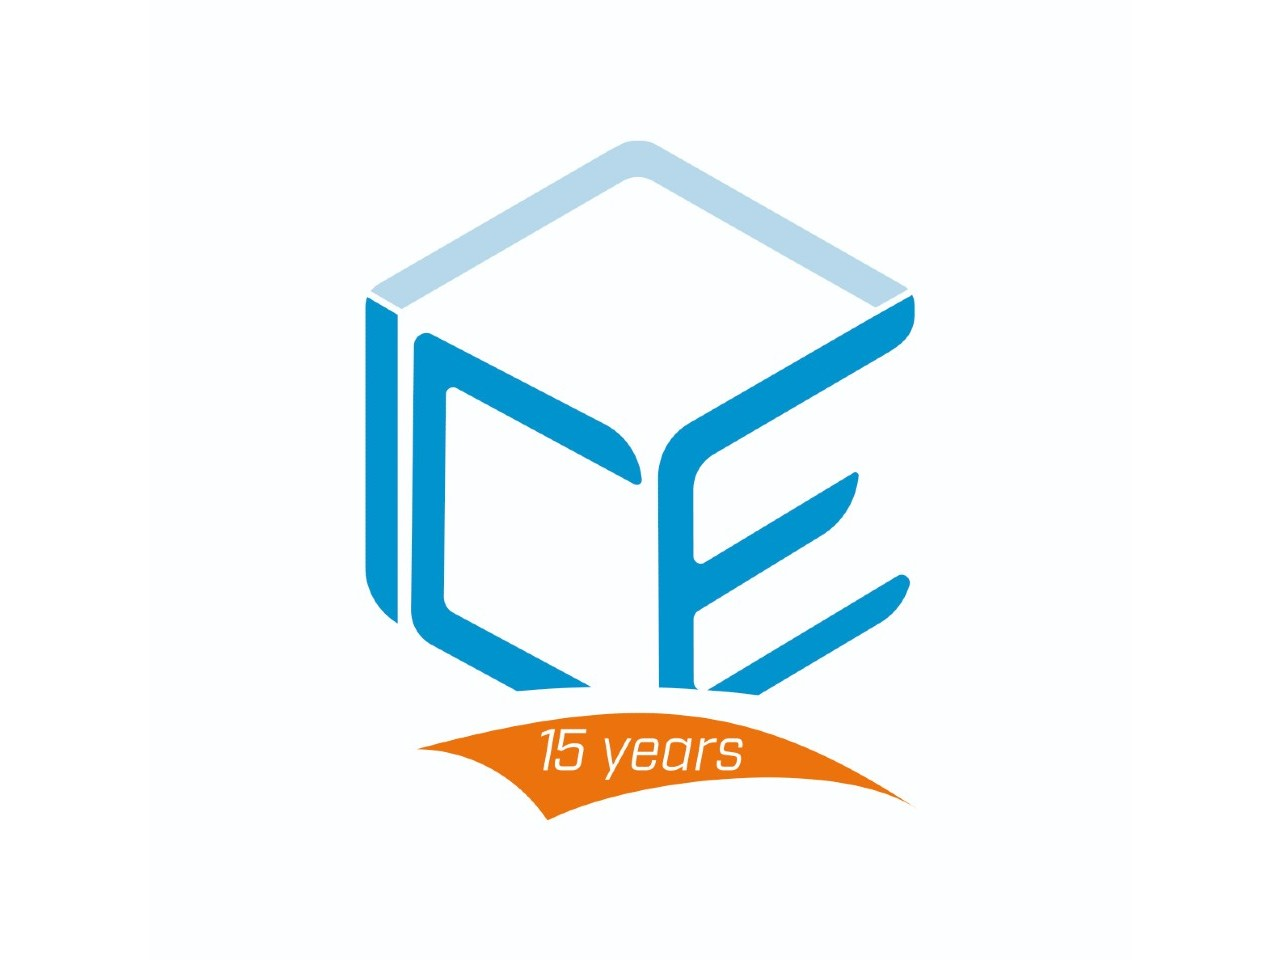 IT Solutions for cruise & travel from ICE: 15 years on